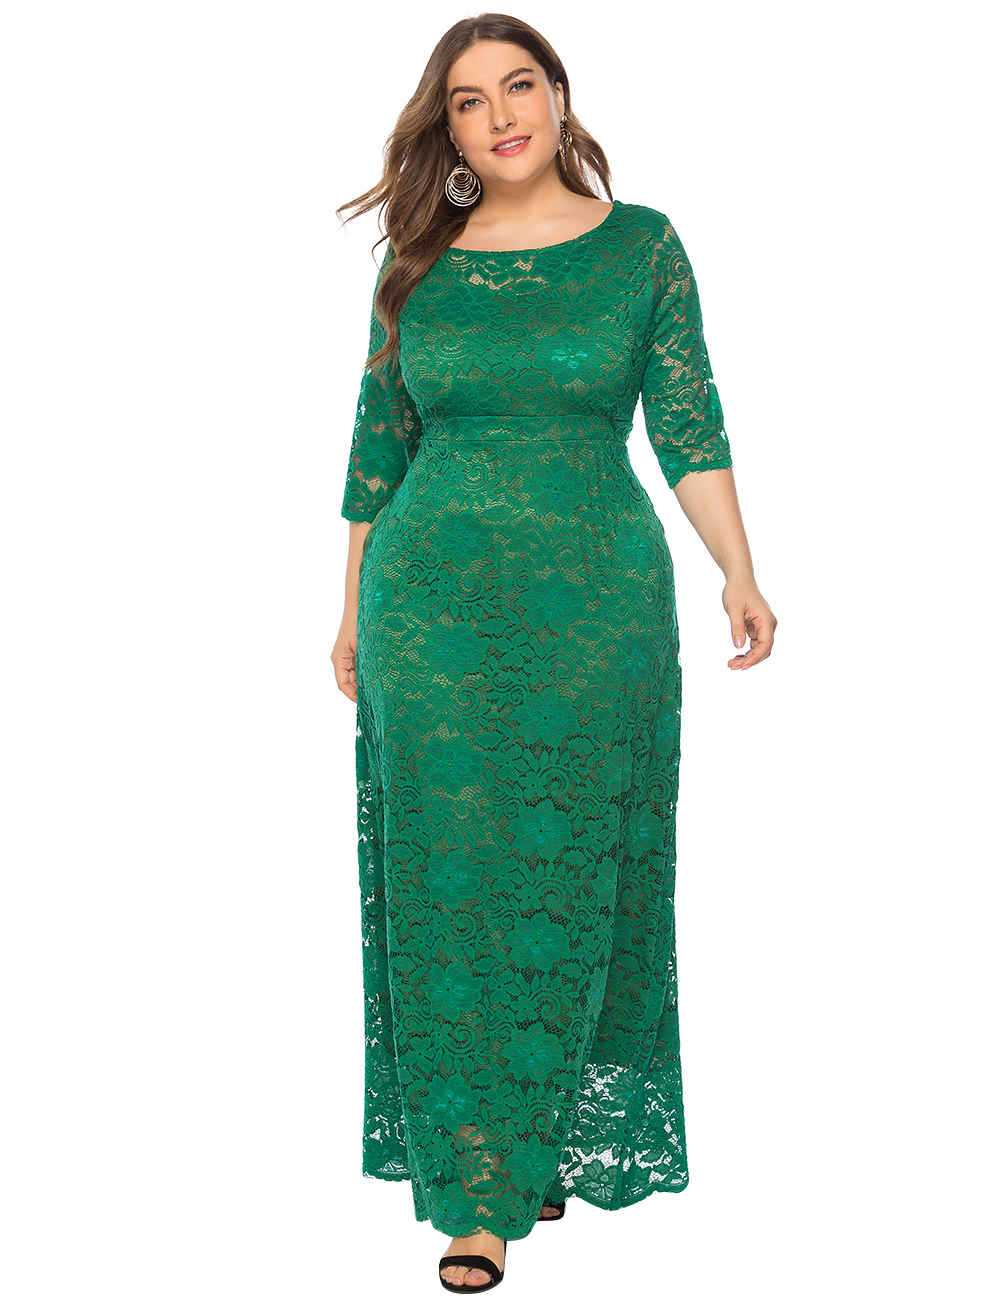 //cdn.affectcloud.com/lover-beauty/upload/imgs/Plus_Size/Plus_Size_Dresses/VZ191268-GN1/VZ191268-GN1-201908305d68f29cba121.jpg